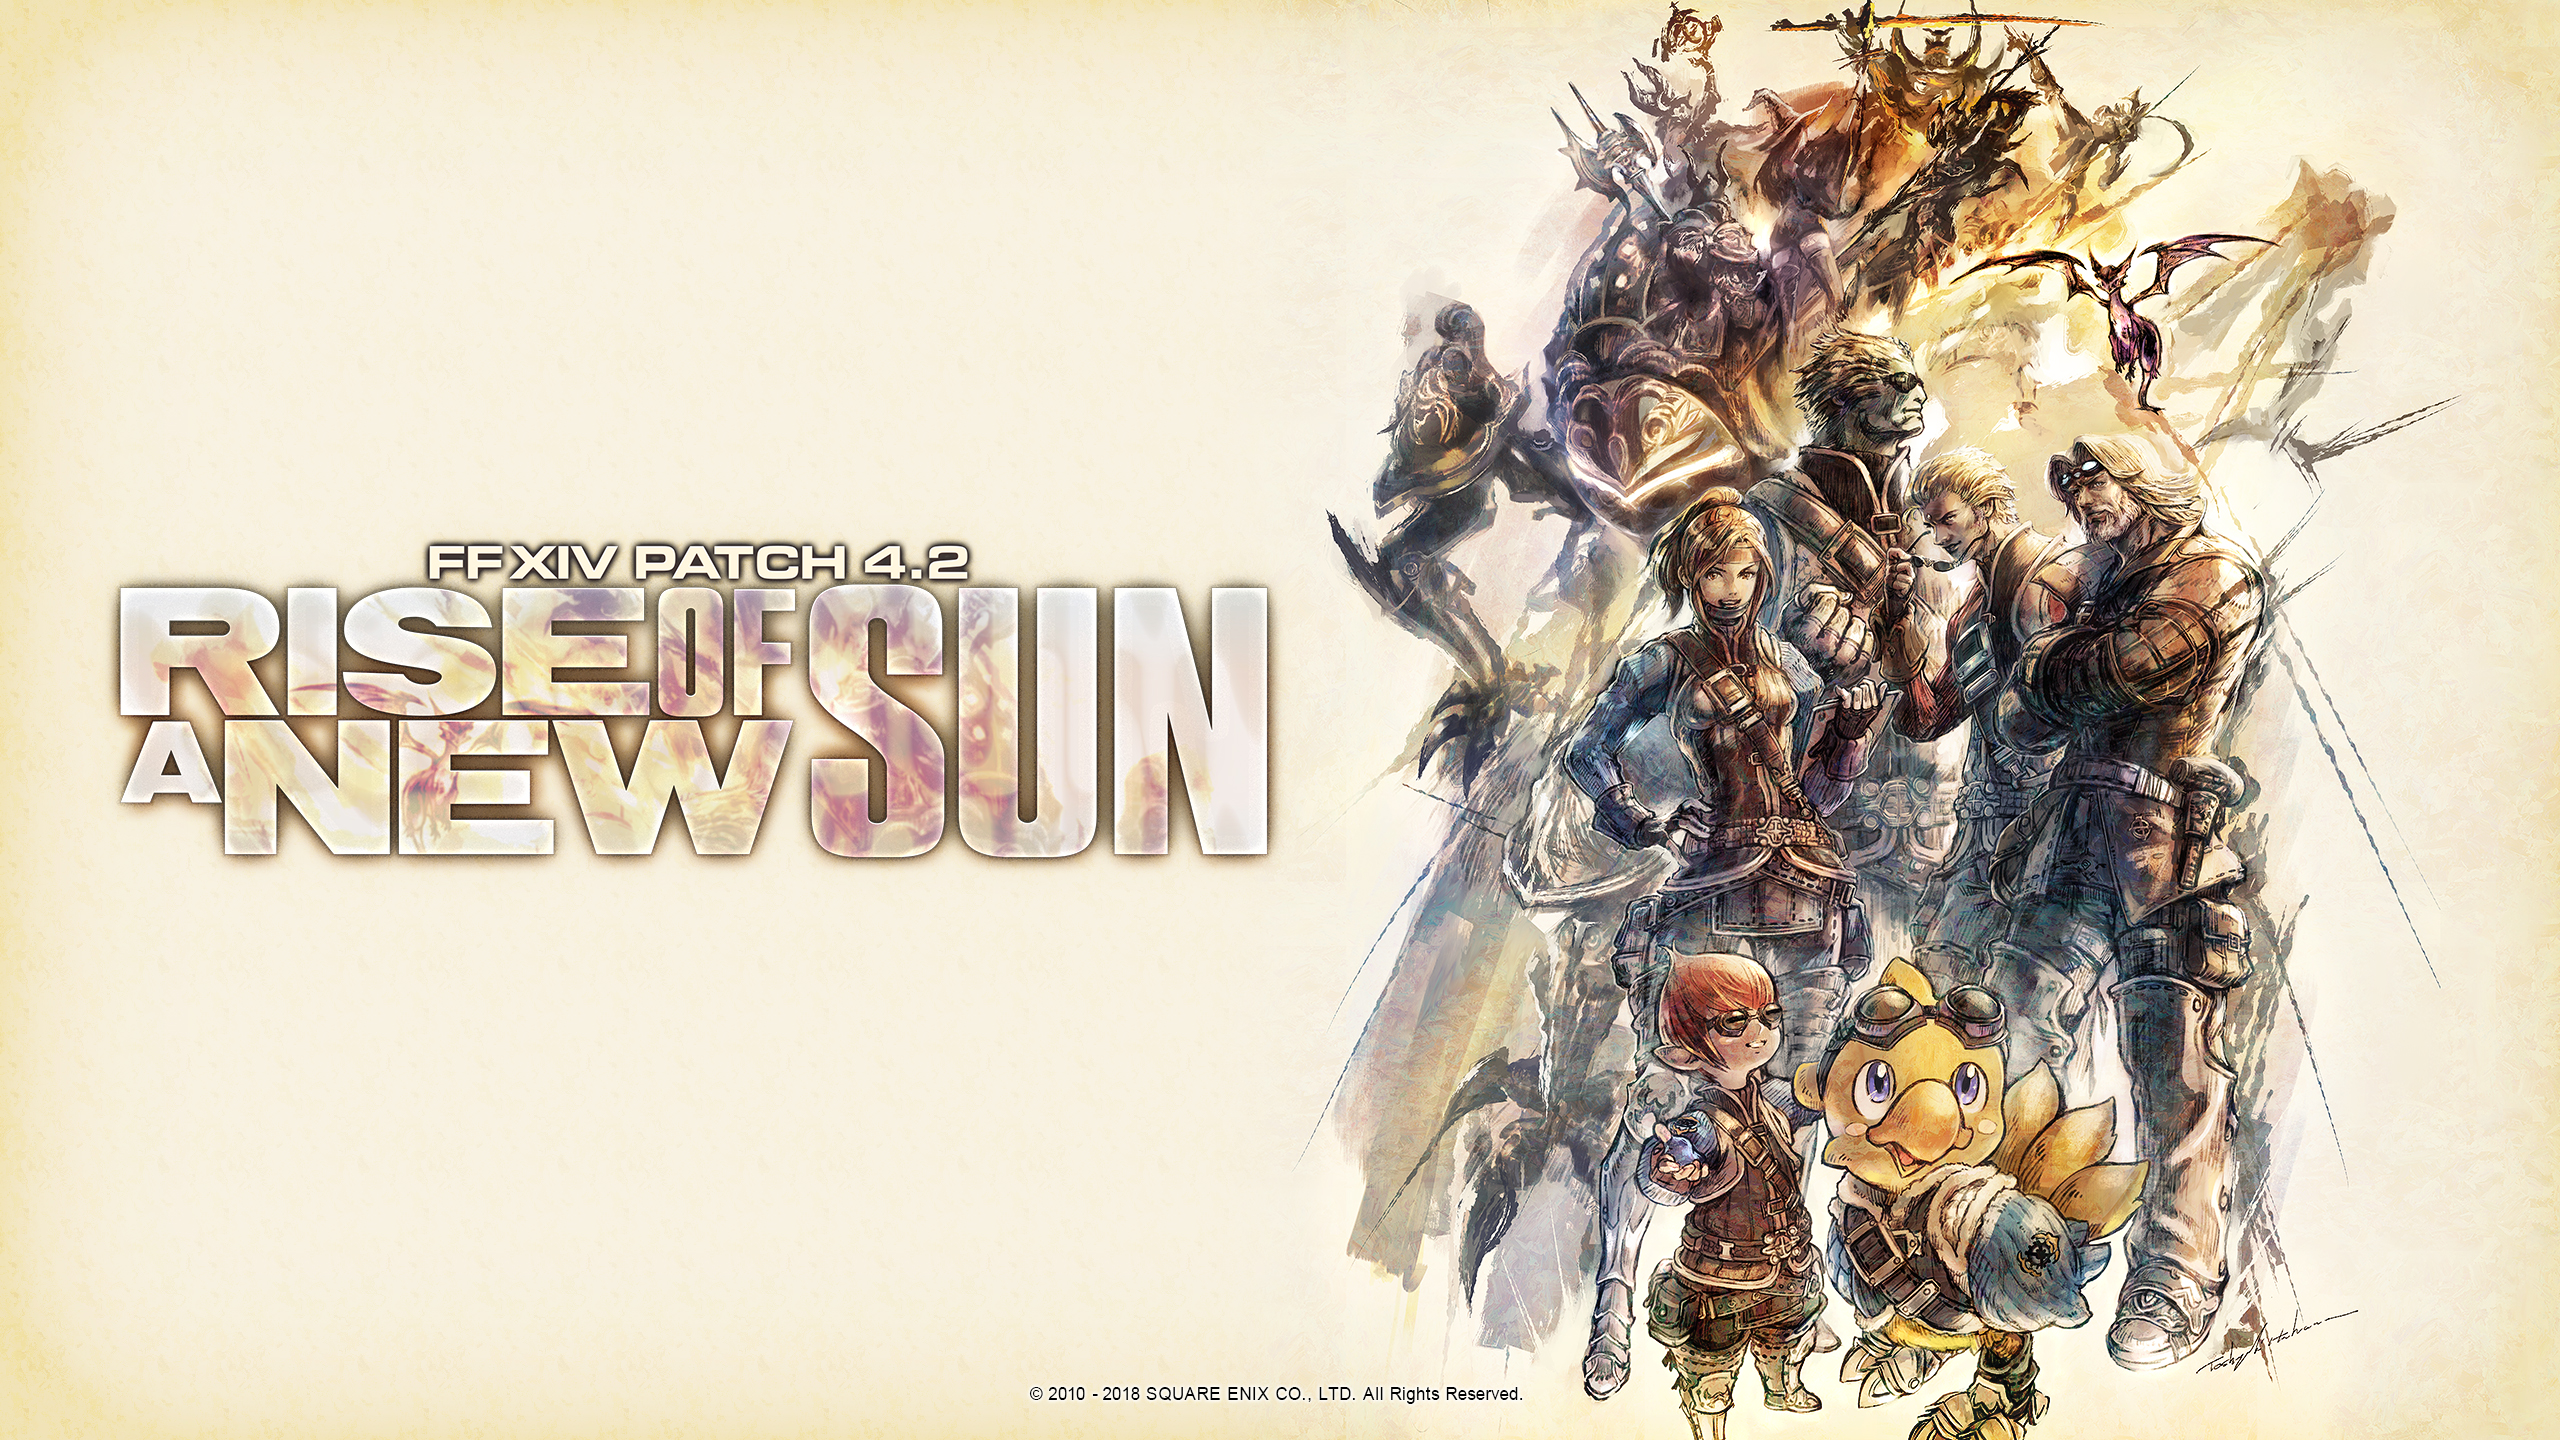 """The desktop wallpaper for Final Fantasy XIV patch 4.2, """"Rise of a New Sun,"""" with artwork depicting the members of Garlond Ironworks."""